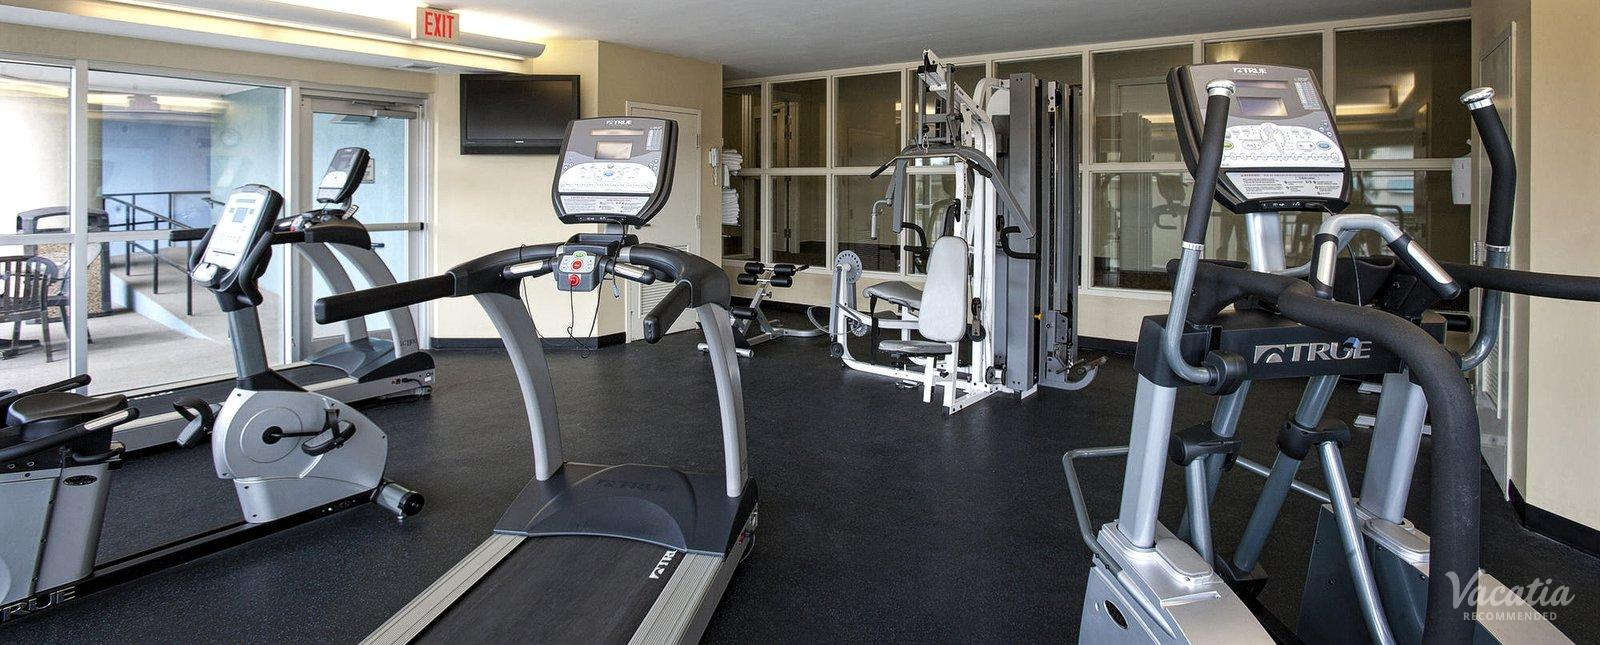 Bay View Resort Fitness Center